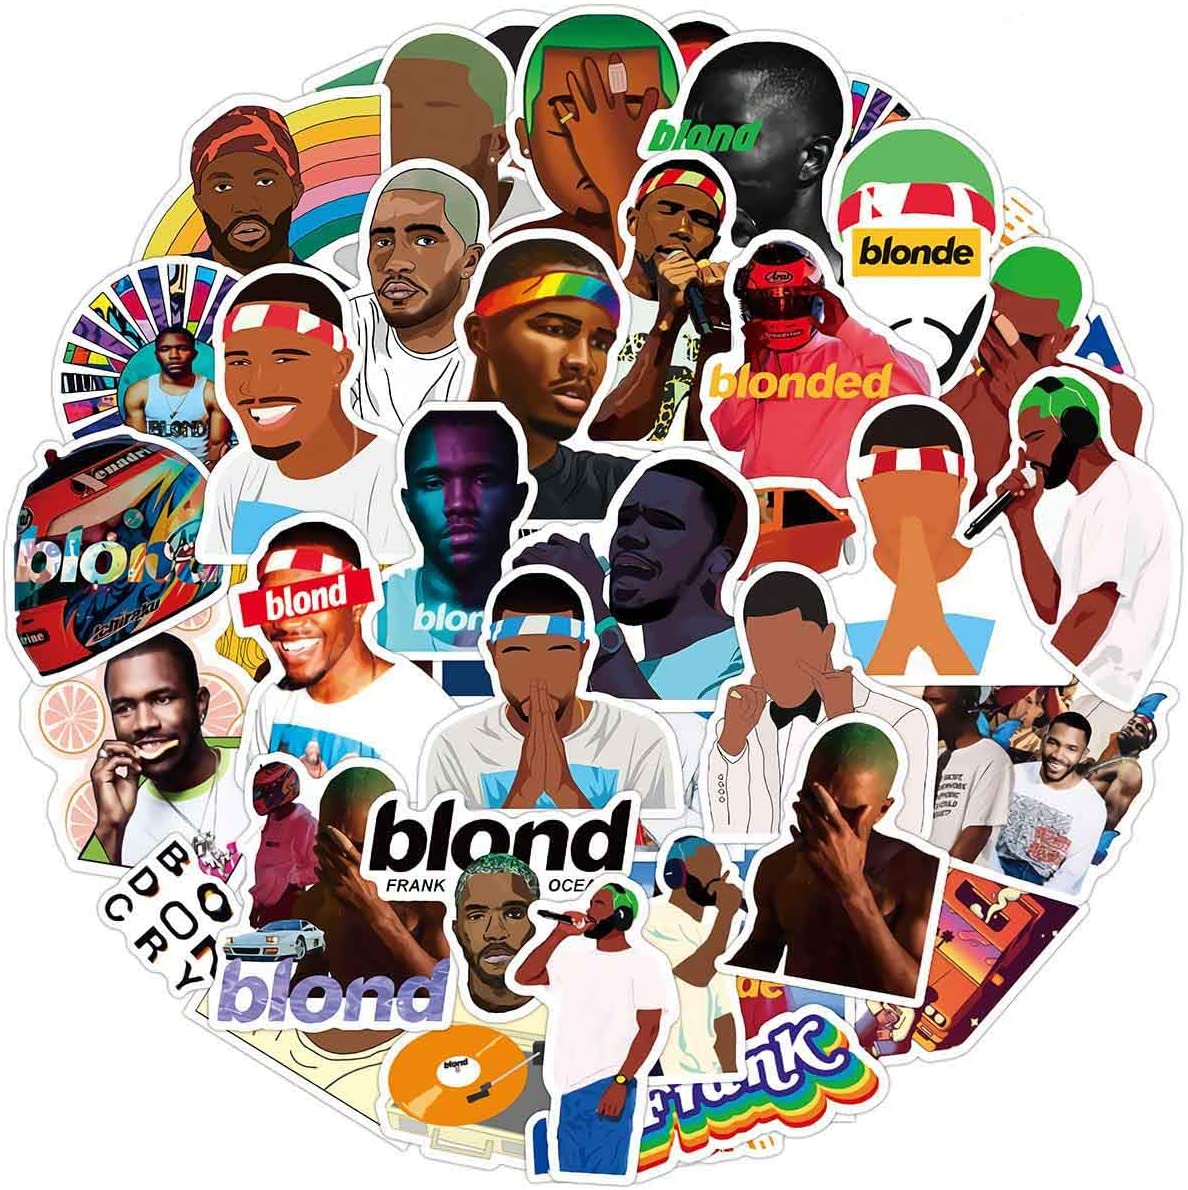 50 Pcs Hip Hop Singer Frank Ocean Blonde Stickers, Waterproof Durable Trendy Vinyl Stickers for Laptop Decals Hydro Flask and Water Bottles, Teens and Adults Gifts